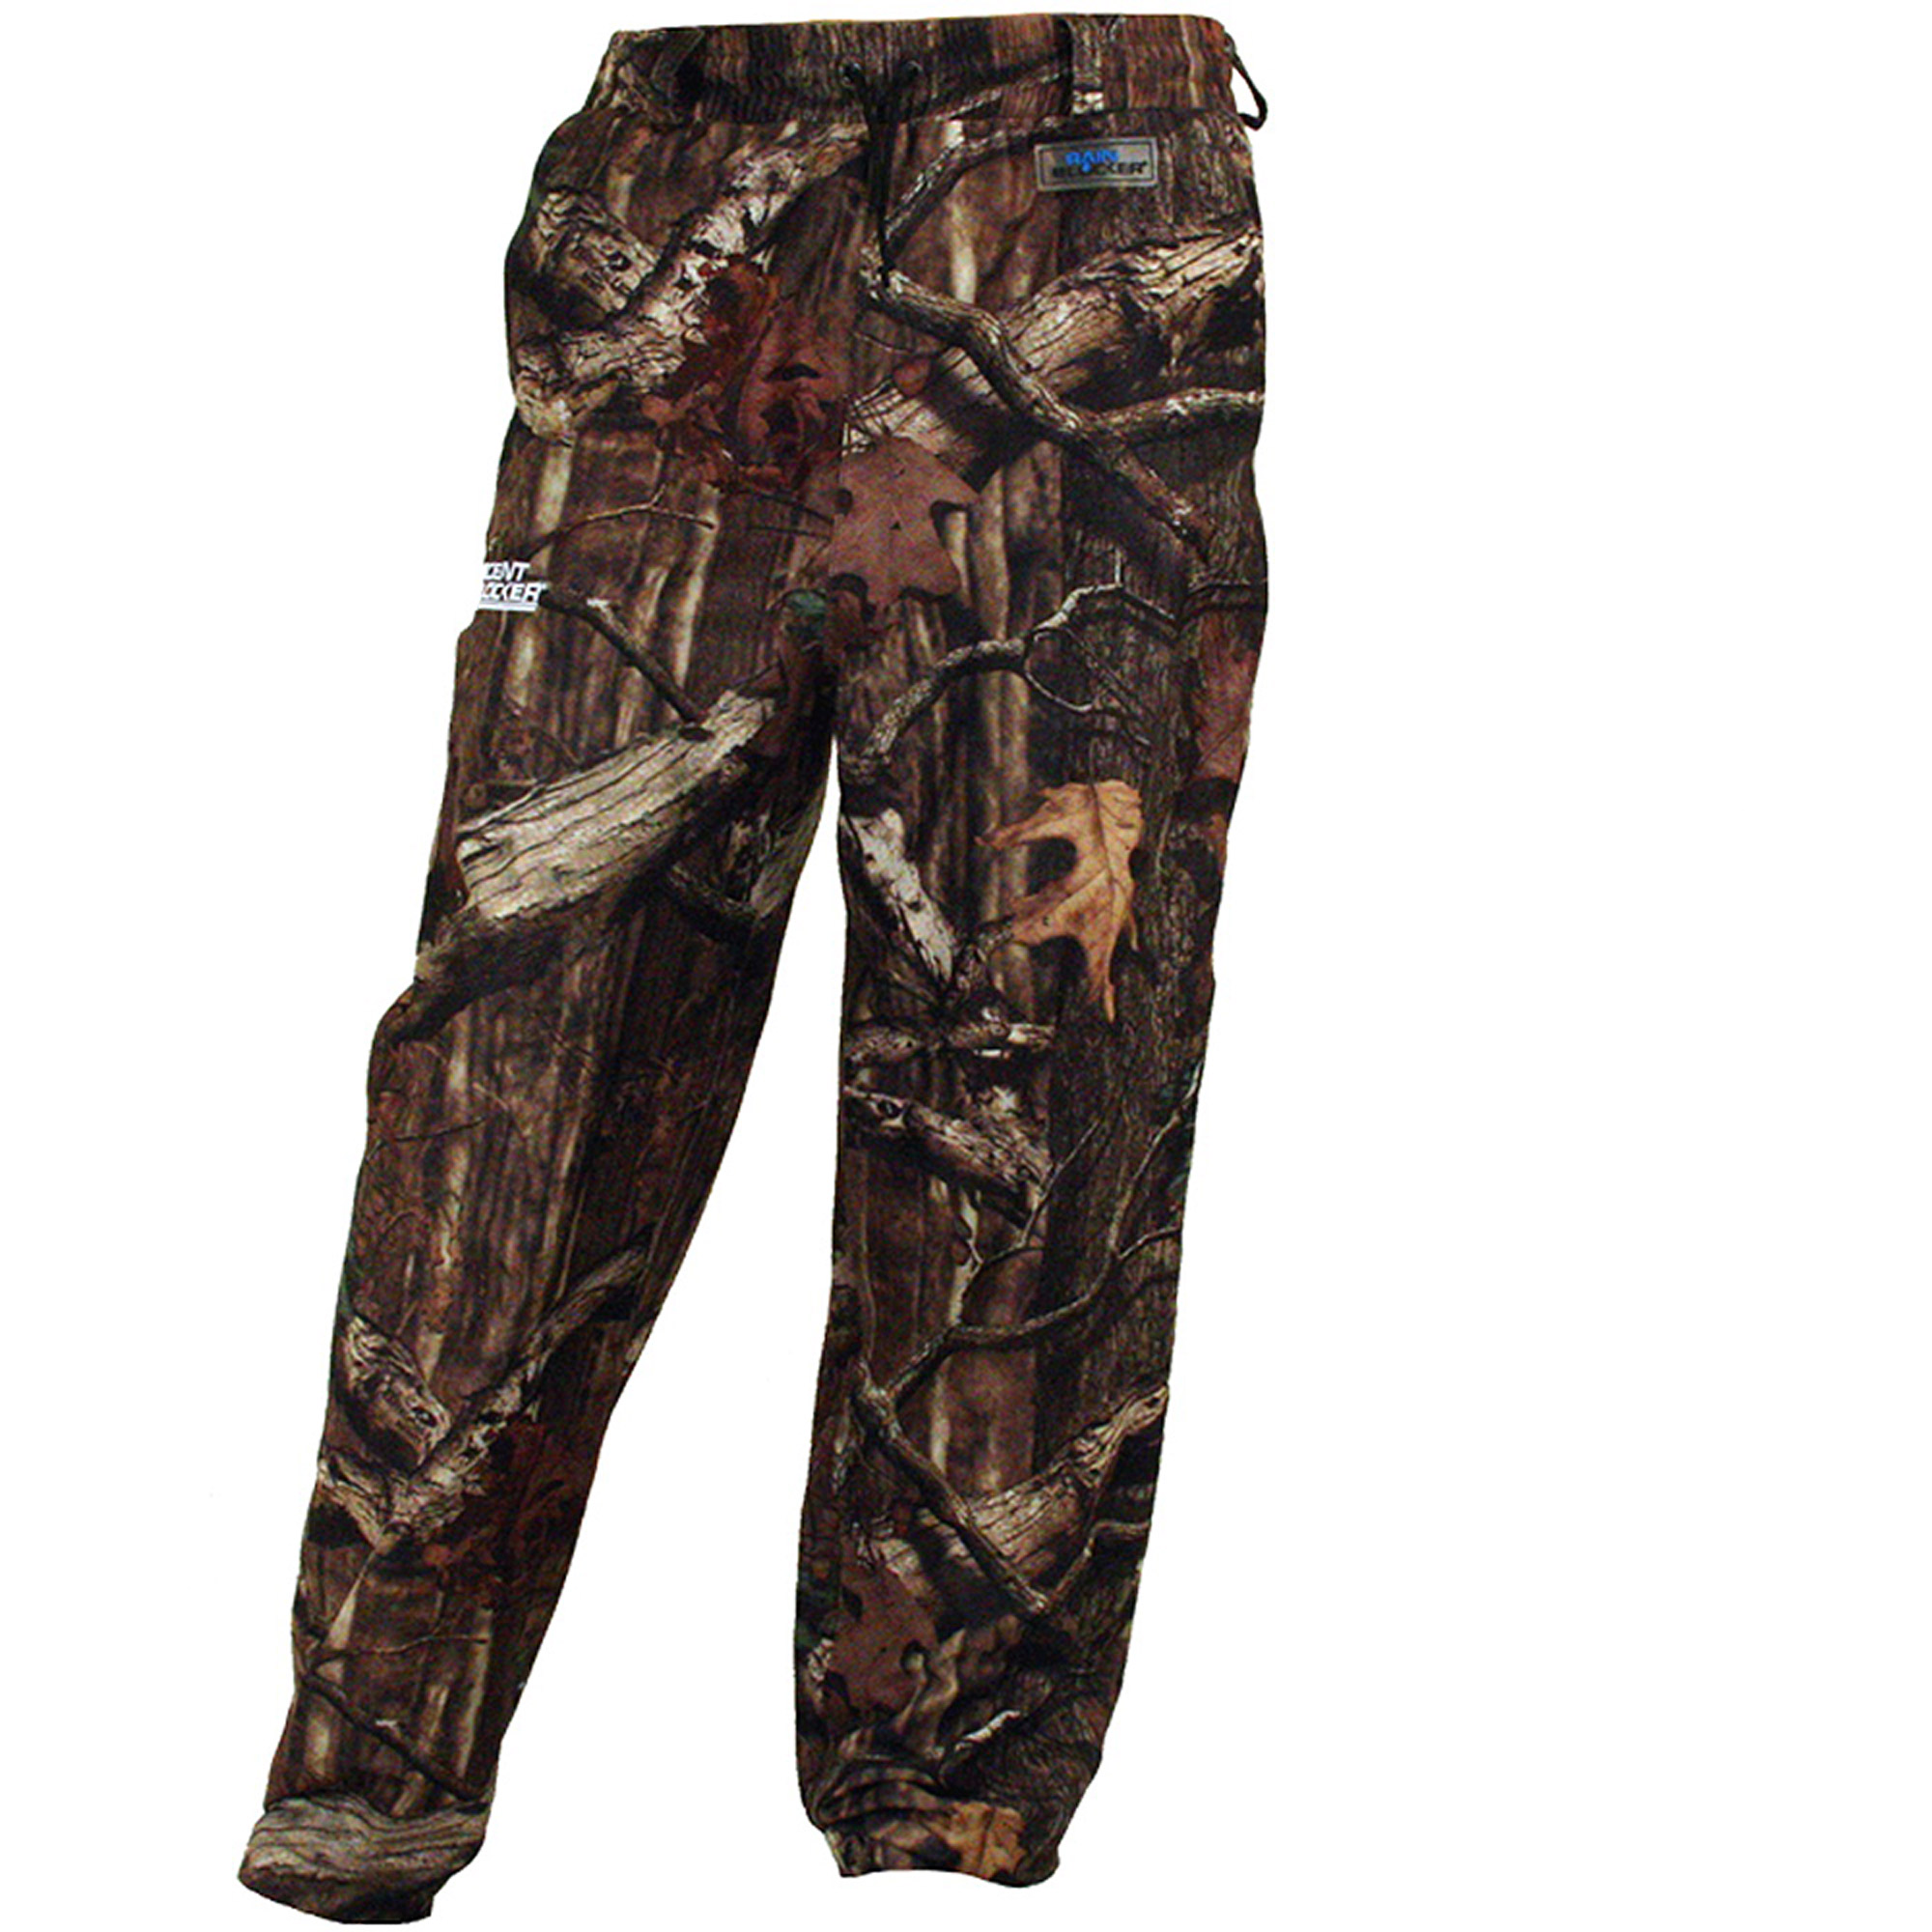 Scent Blocker Drencher Pants, Realtree Xtra